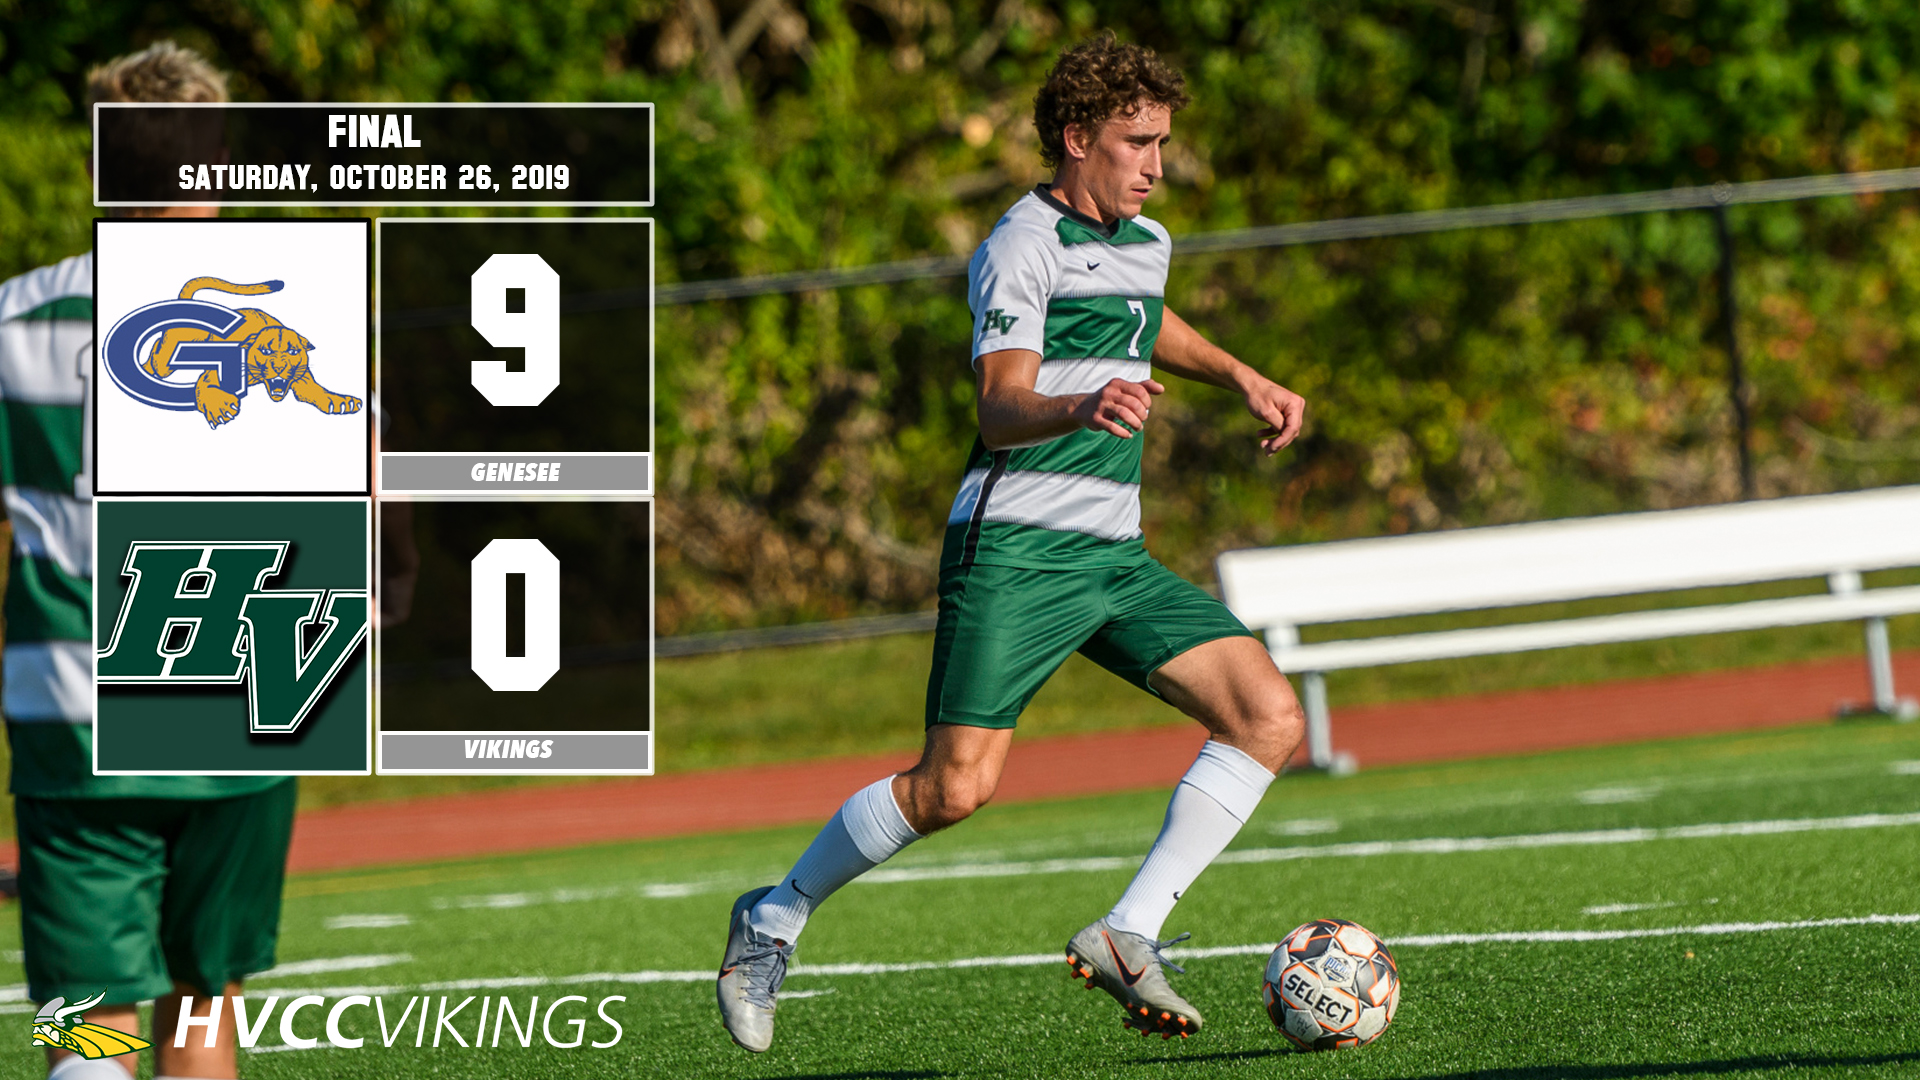 Men's soccer was defeated 9-0 by Genesee on 10/26/2019.